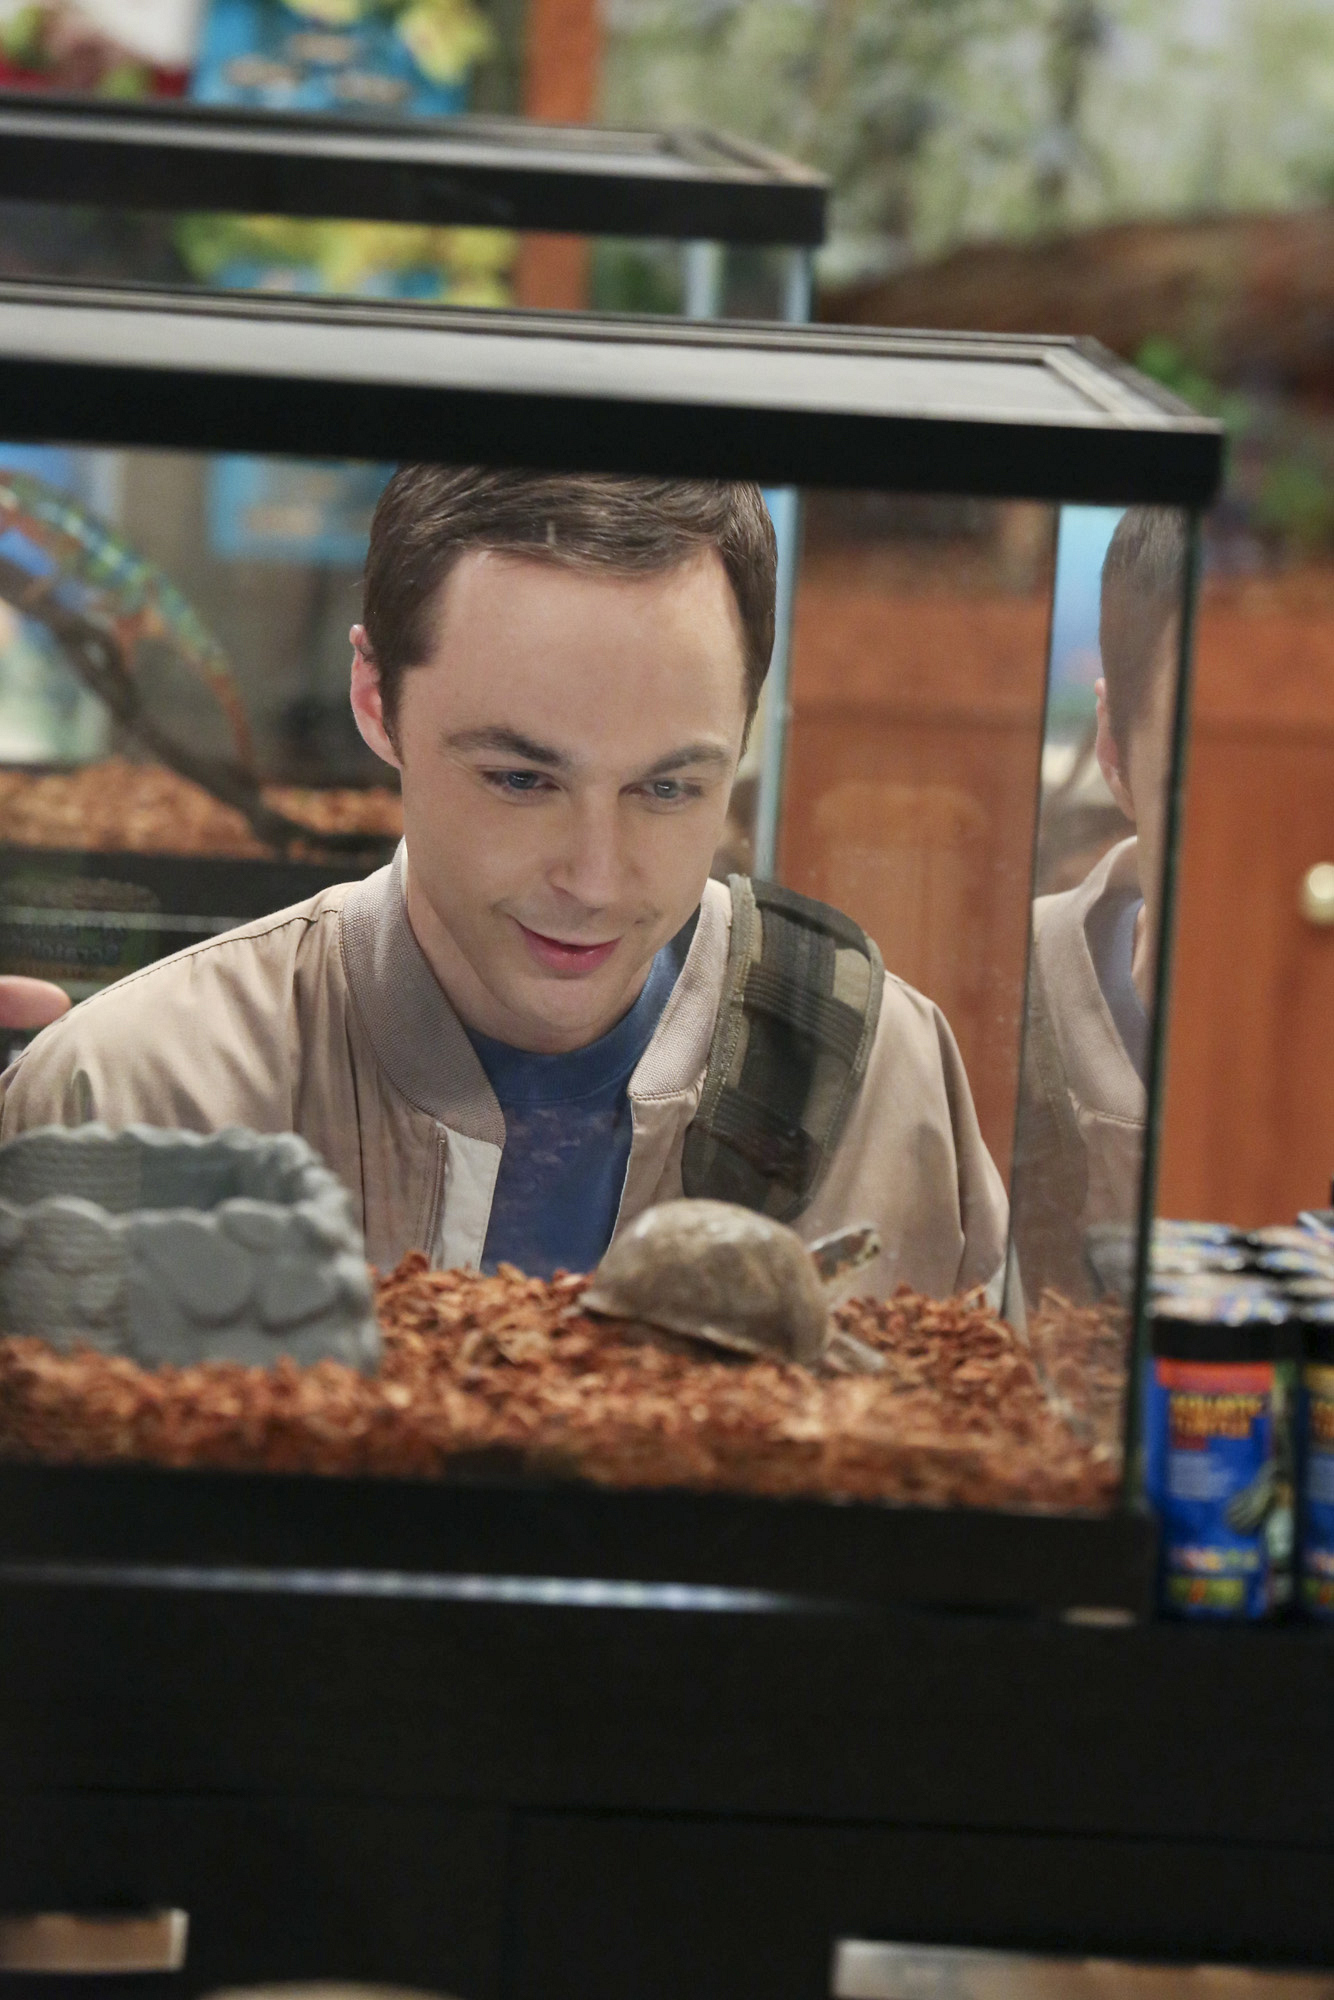 Sheldon eyes an animal